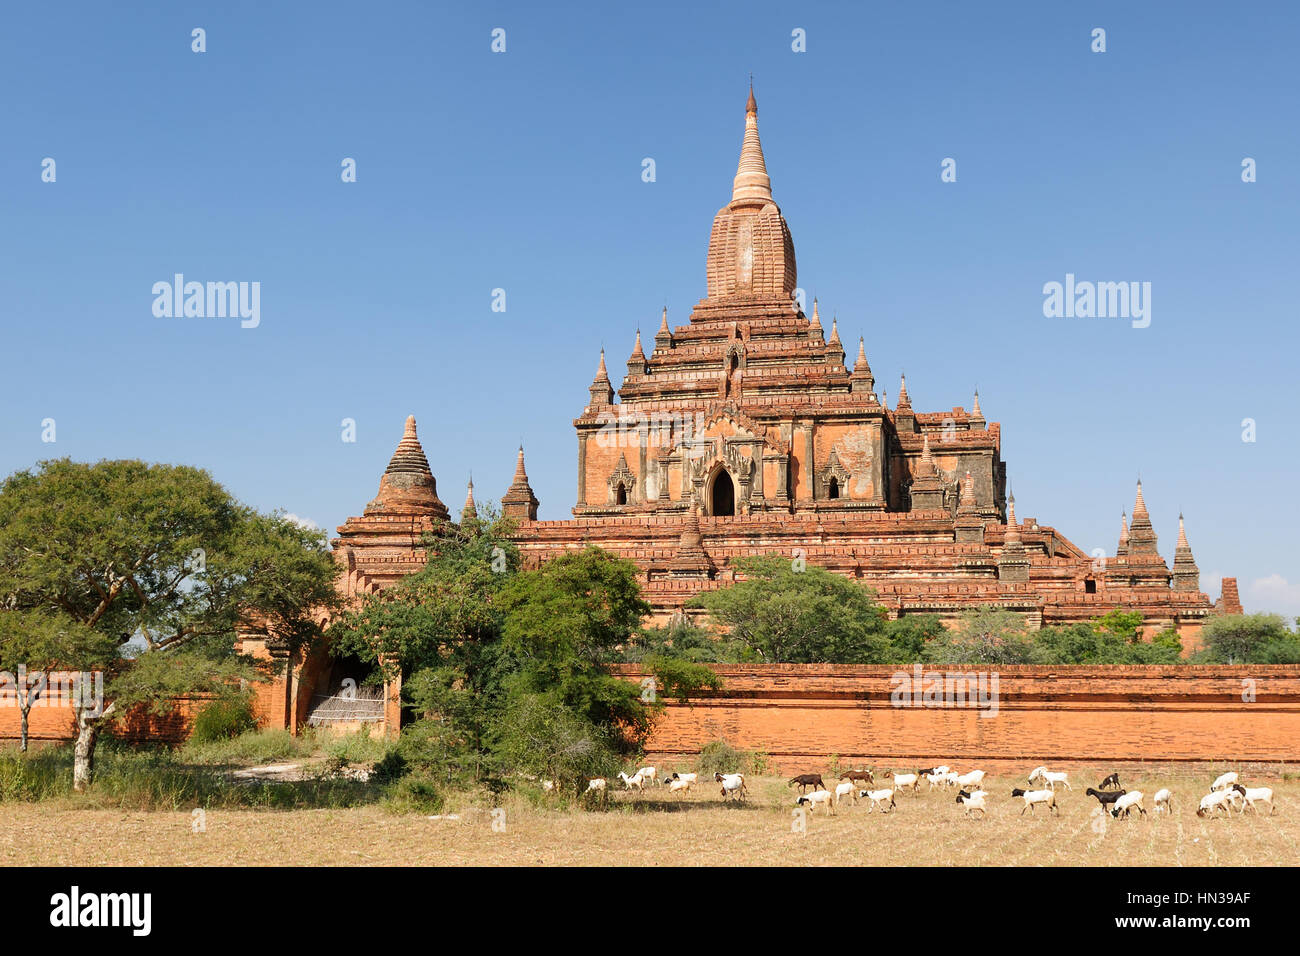 Myanmar (Burma), Bagan, Sulamani Pahto - is one of Bagan's most attractive. This temple, known as the Crowning - Stock Image